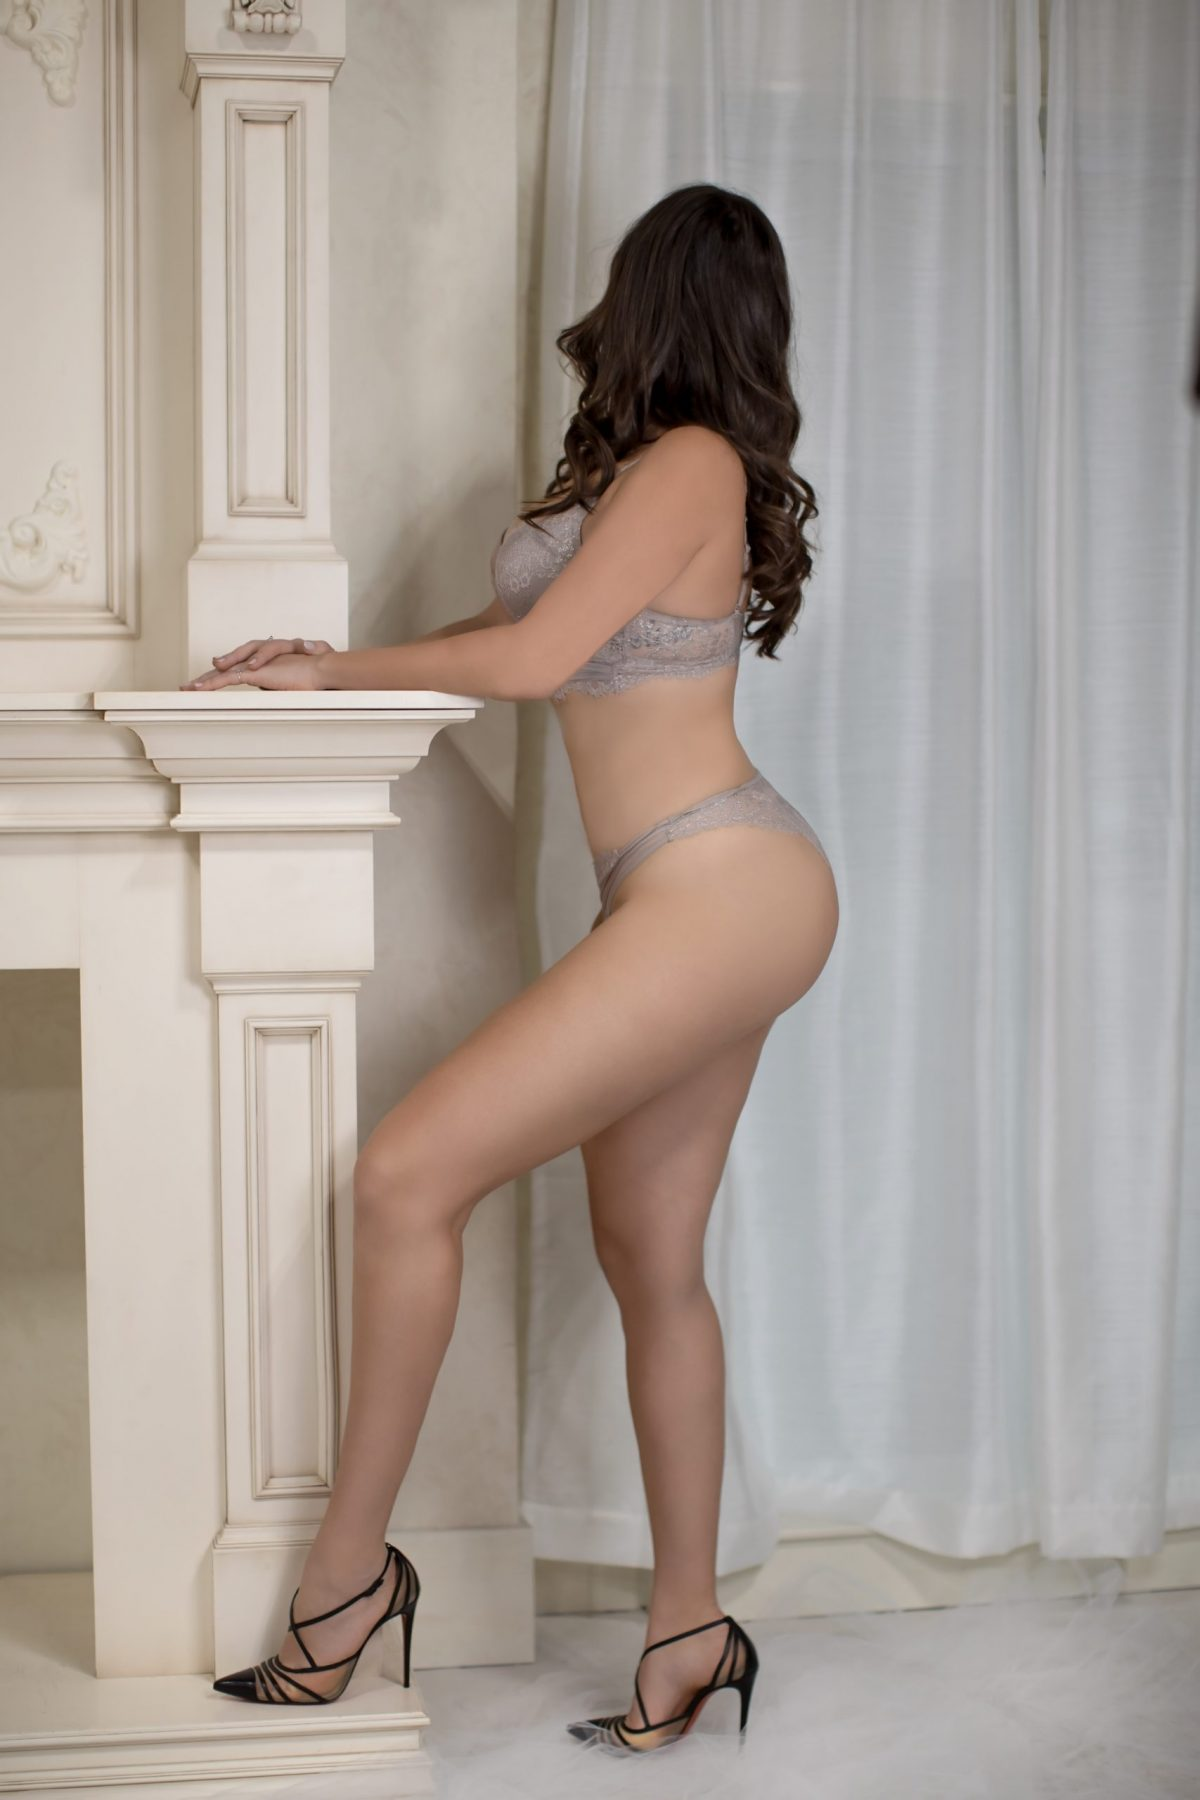 Toronto escorts companion upscale Parker Interests Duo Couple-friendly Disability-friendly Non-smoking Age Mature Figure Slender Tall Breasts Natural Hair Brunette Ethnicity European Tattoos Small